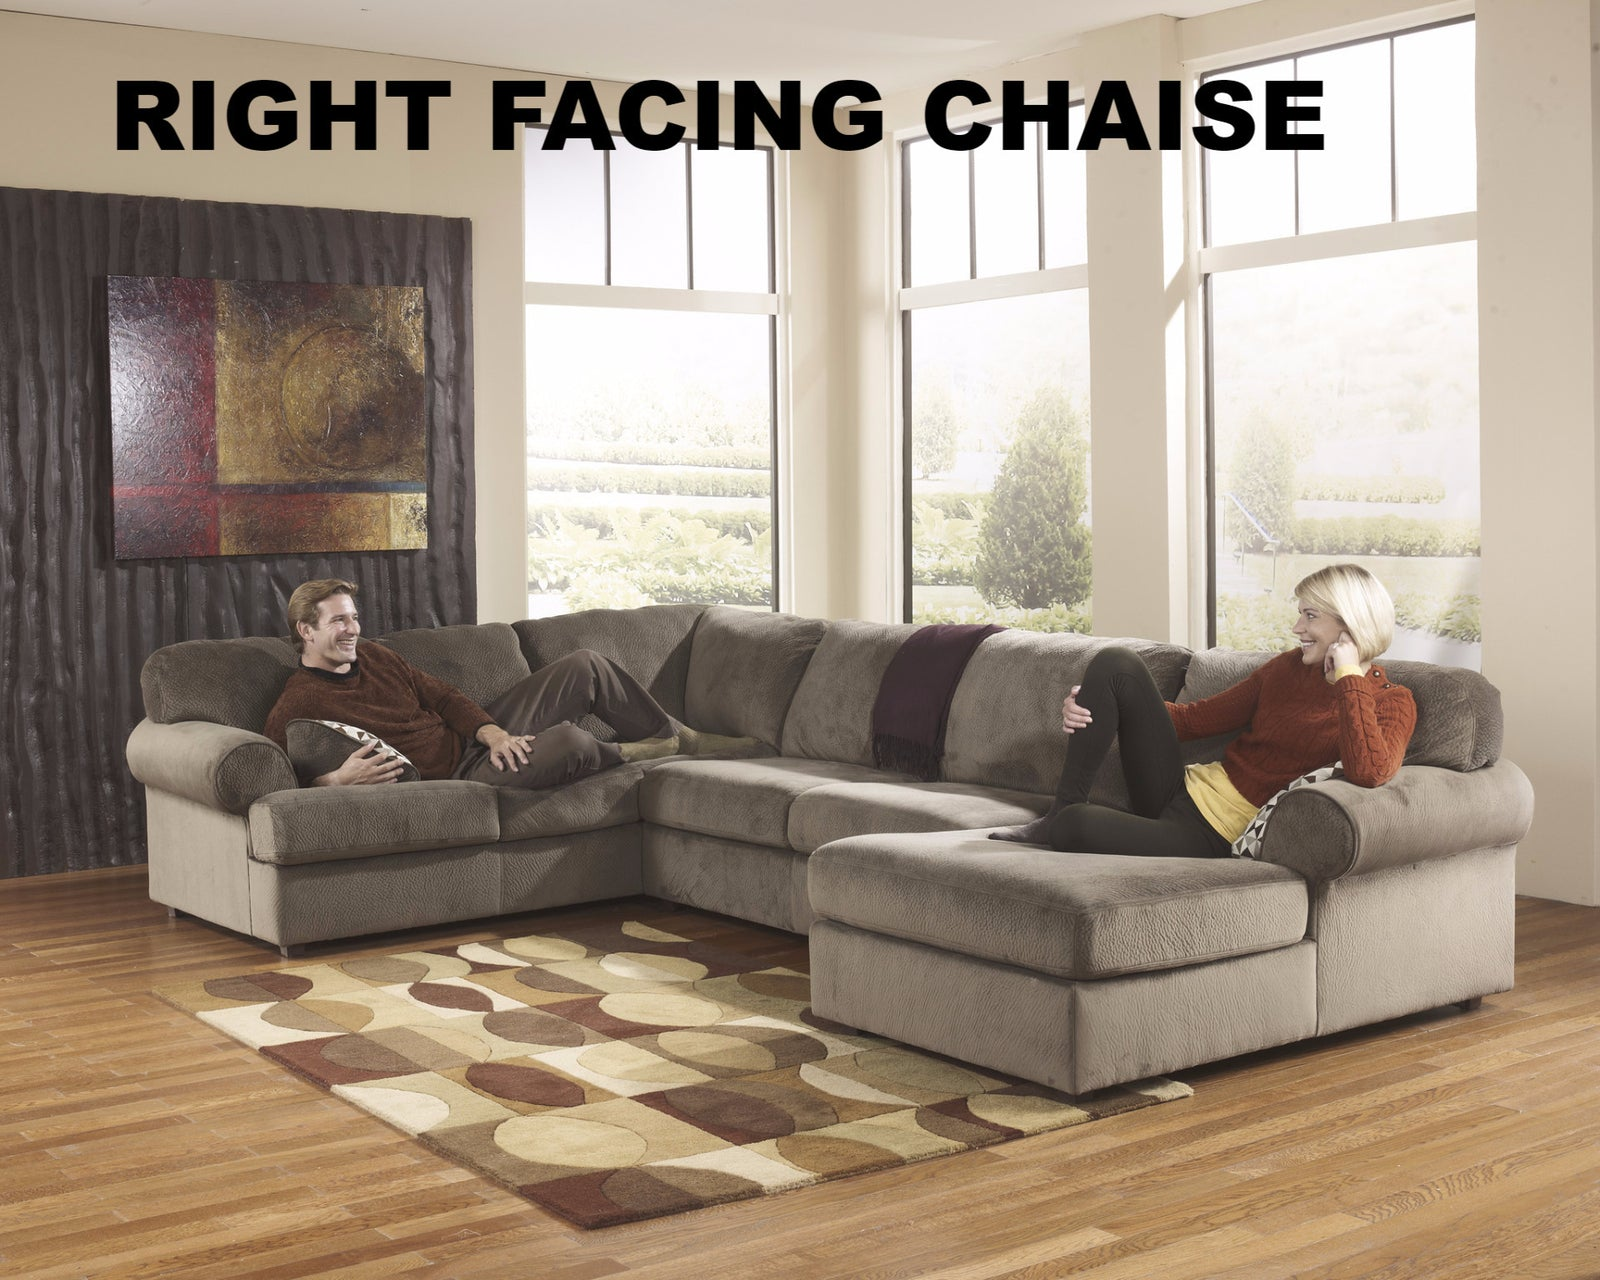 jessa sofas dune bobs piece contemporary pertaining arm left place sectional amazing right decoration to facing